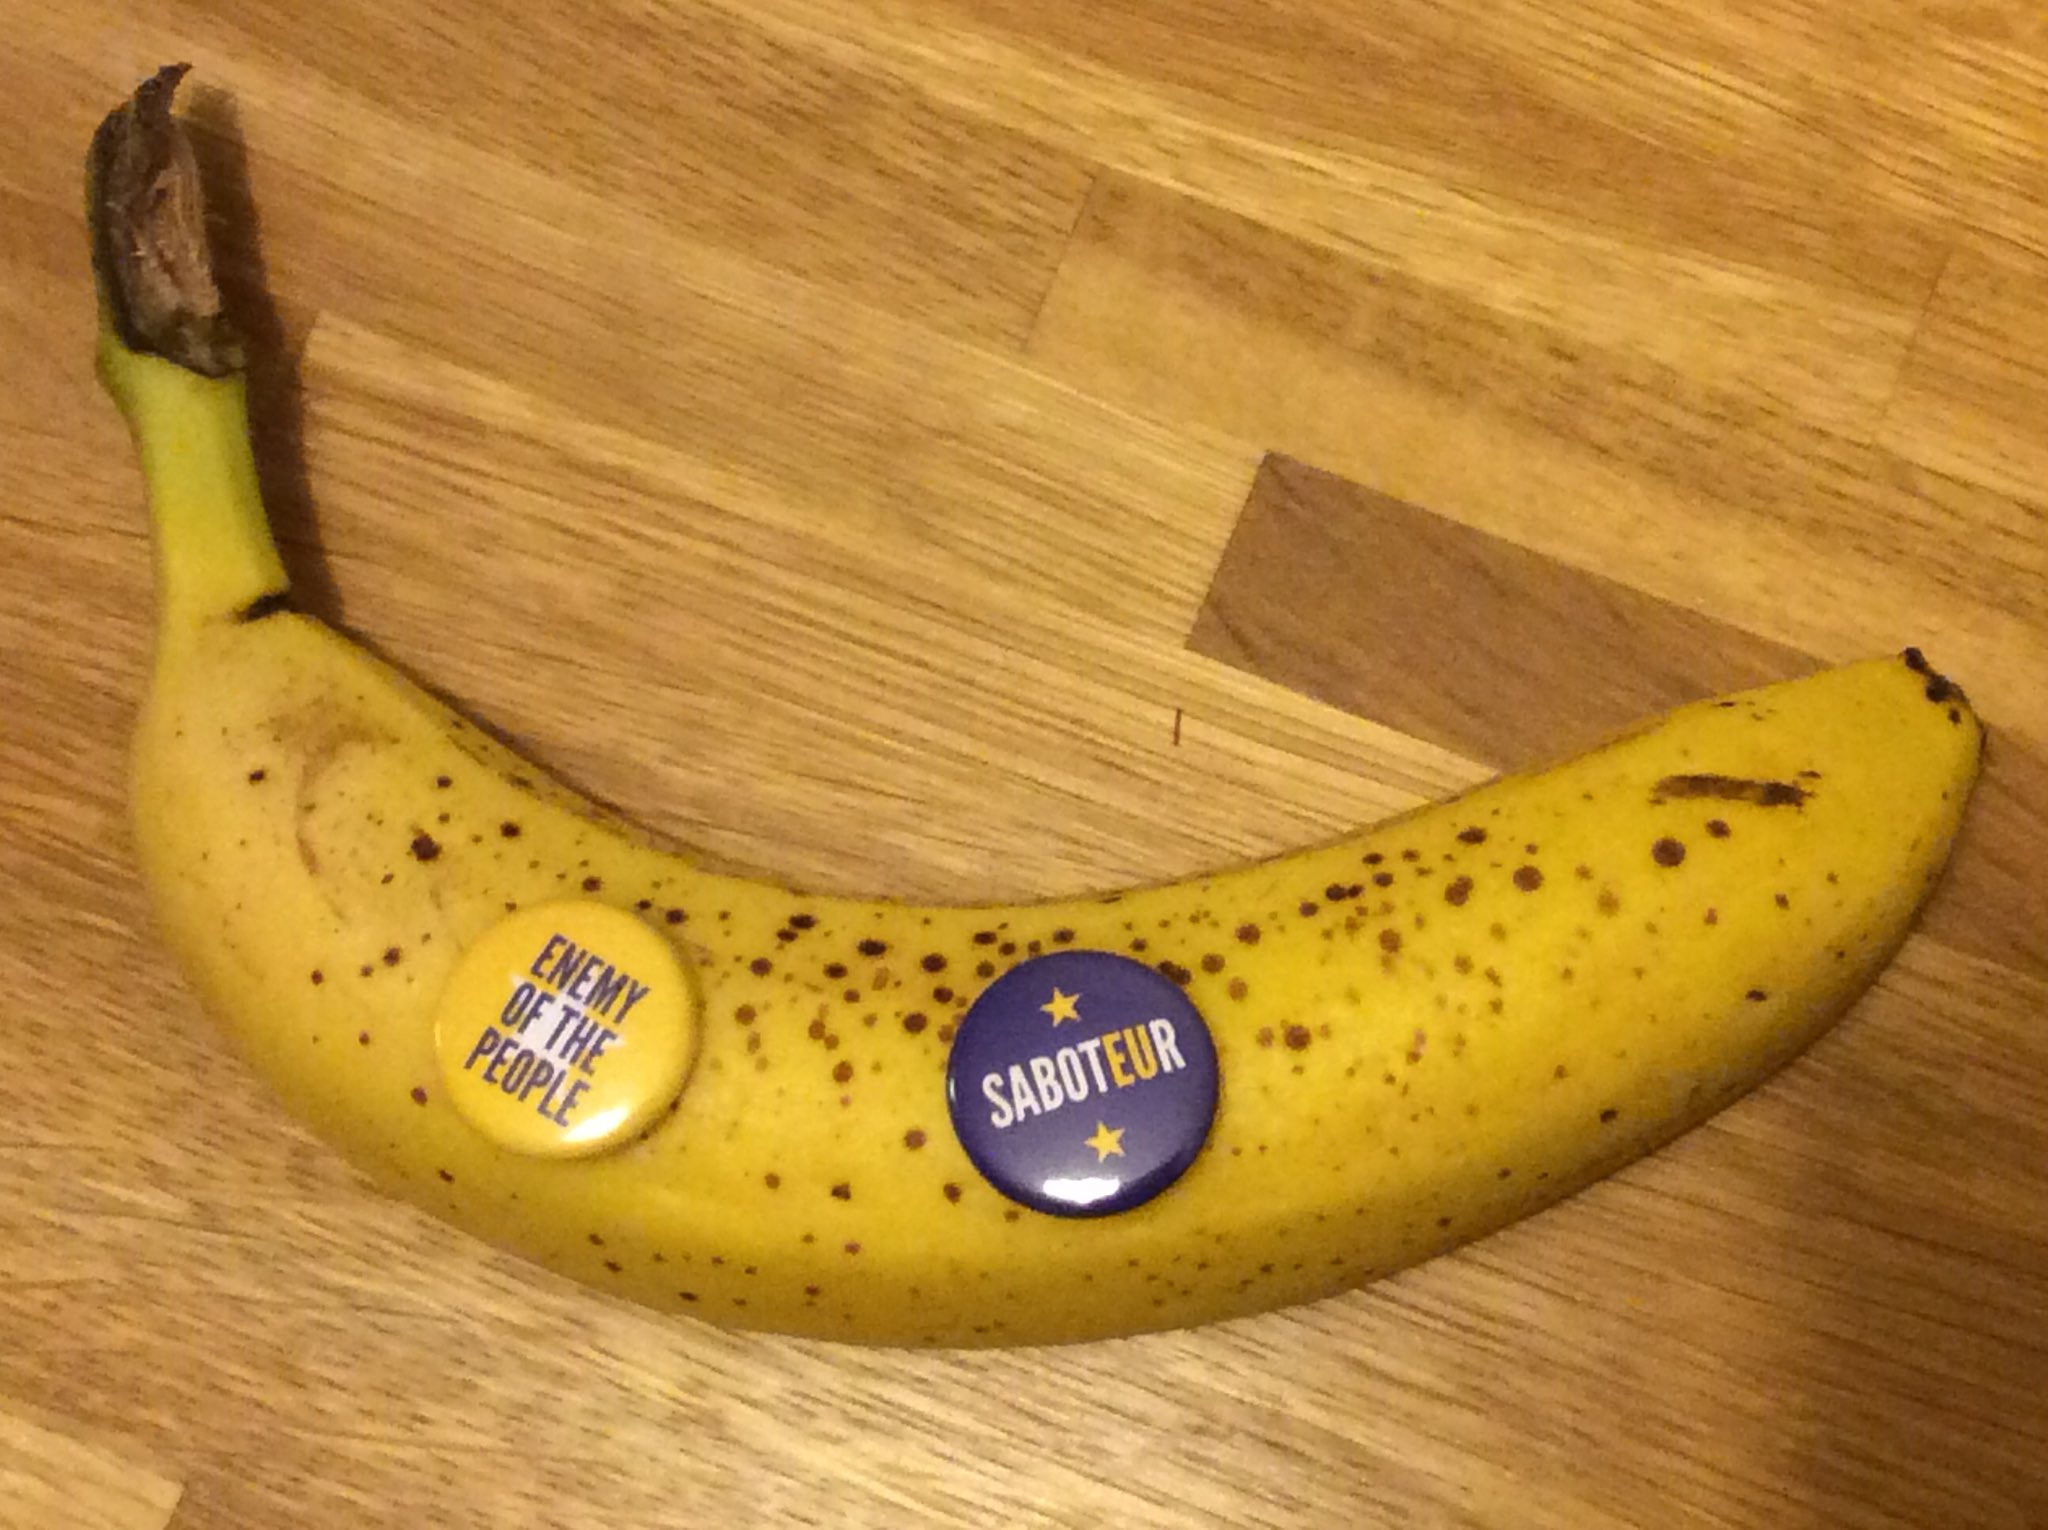 I knew it! As soon as I put these bad boys on there, the straight banana went bendy @RemainiacsCast https://t.co/QnYIGUJvkA